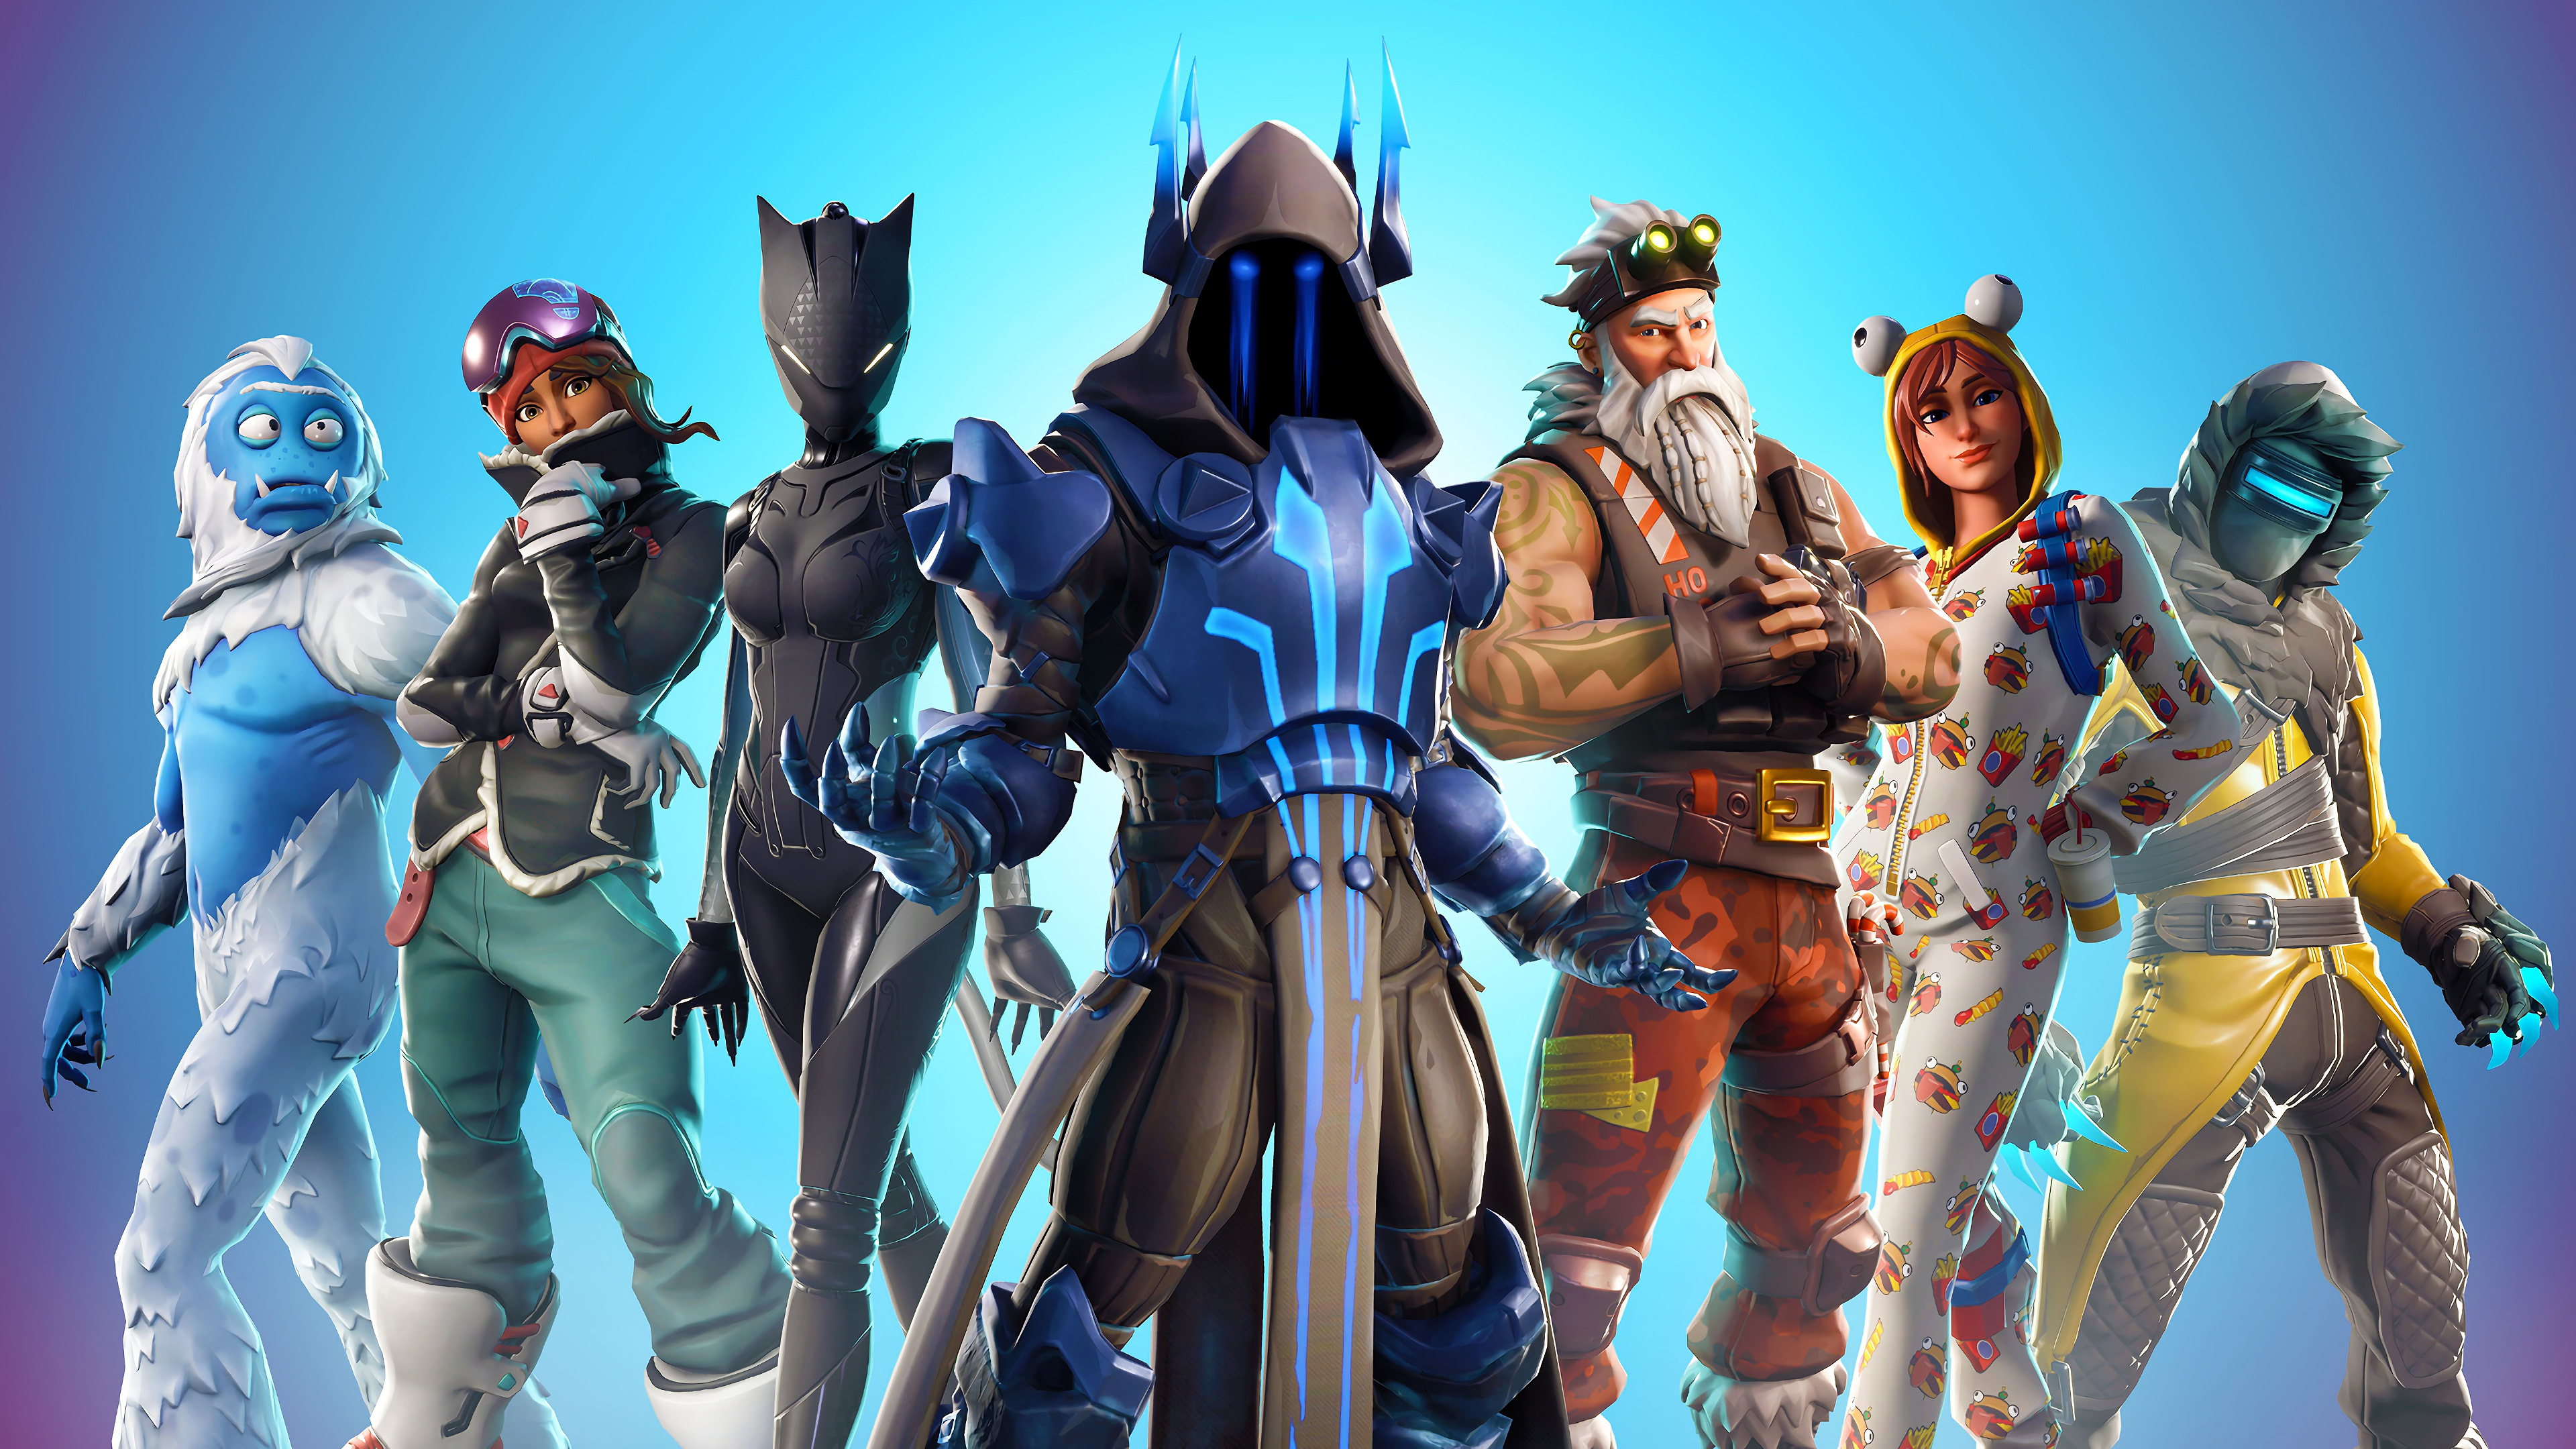 fortnite season 7 2018 4k 1545589692 - Fortnite Season 7 2018 4k - ps games wallpapers, hd-wallpapers, games wallpapers, fortnite wallpapers, fortnite season 7 wallpapers, 4k-wallpapers, 2018 games wallpapers